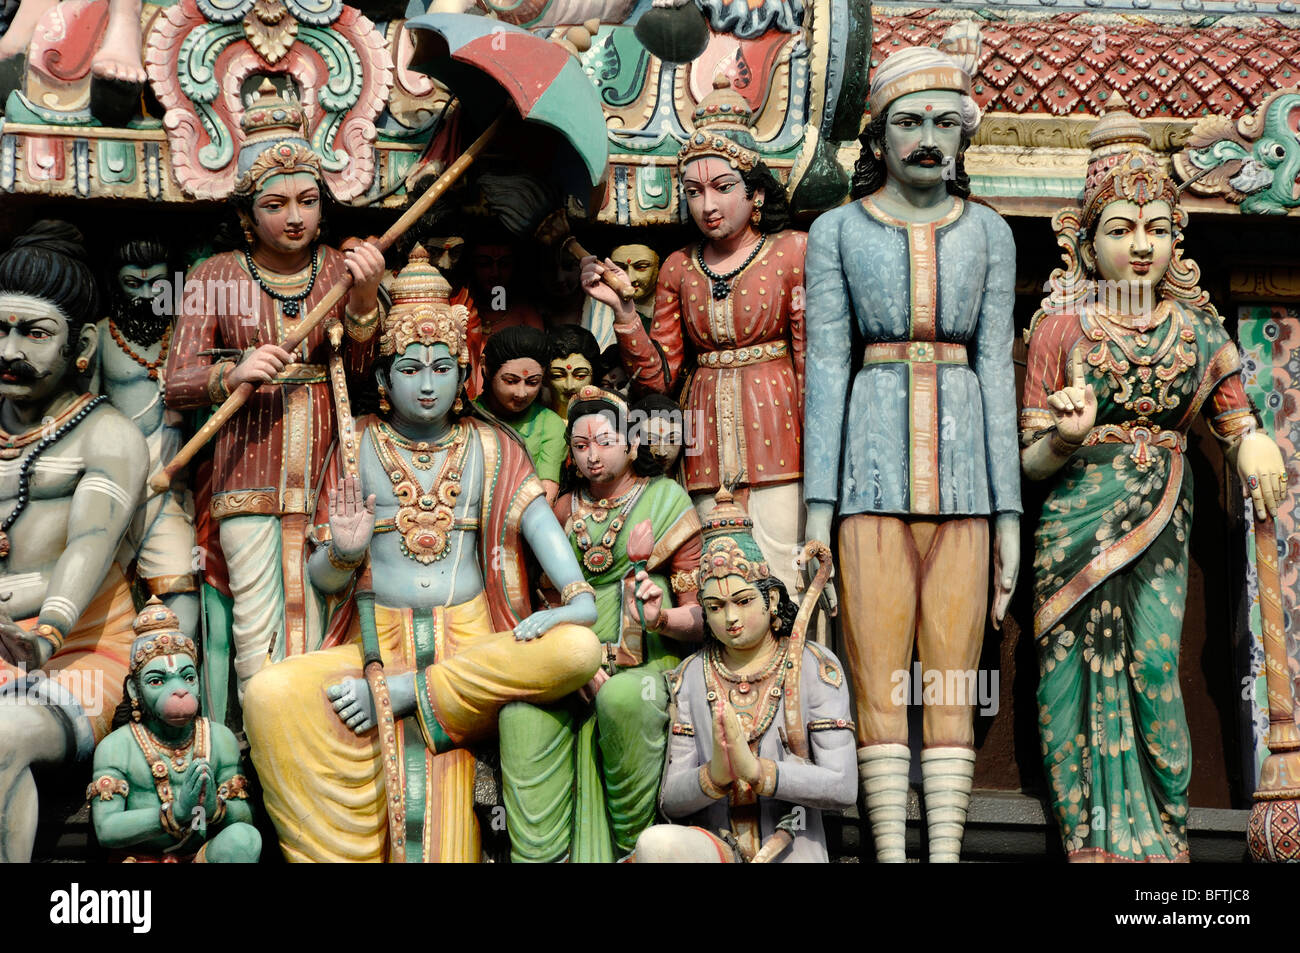 Hindu Gods or Deities on the Entrance Tower Roof or Gopuram of the Sri Mariamman Temple (f. 1827), Chinatown, Singapore - Stock Image